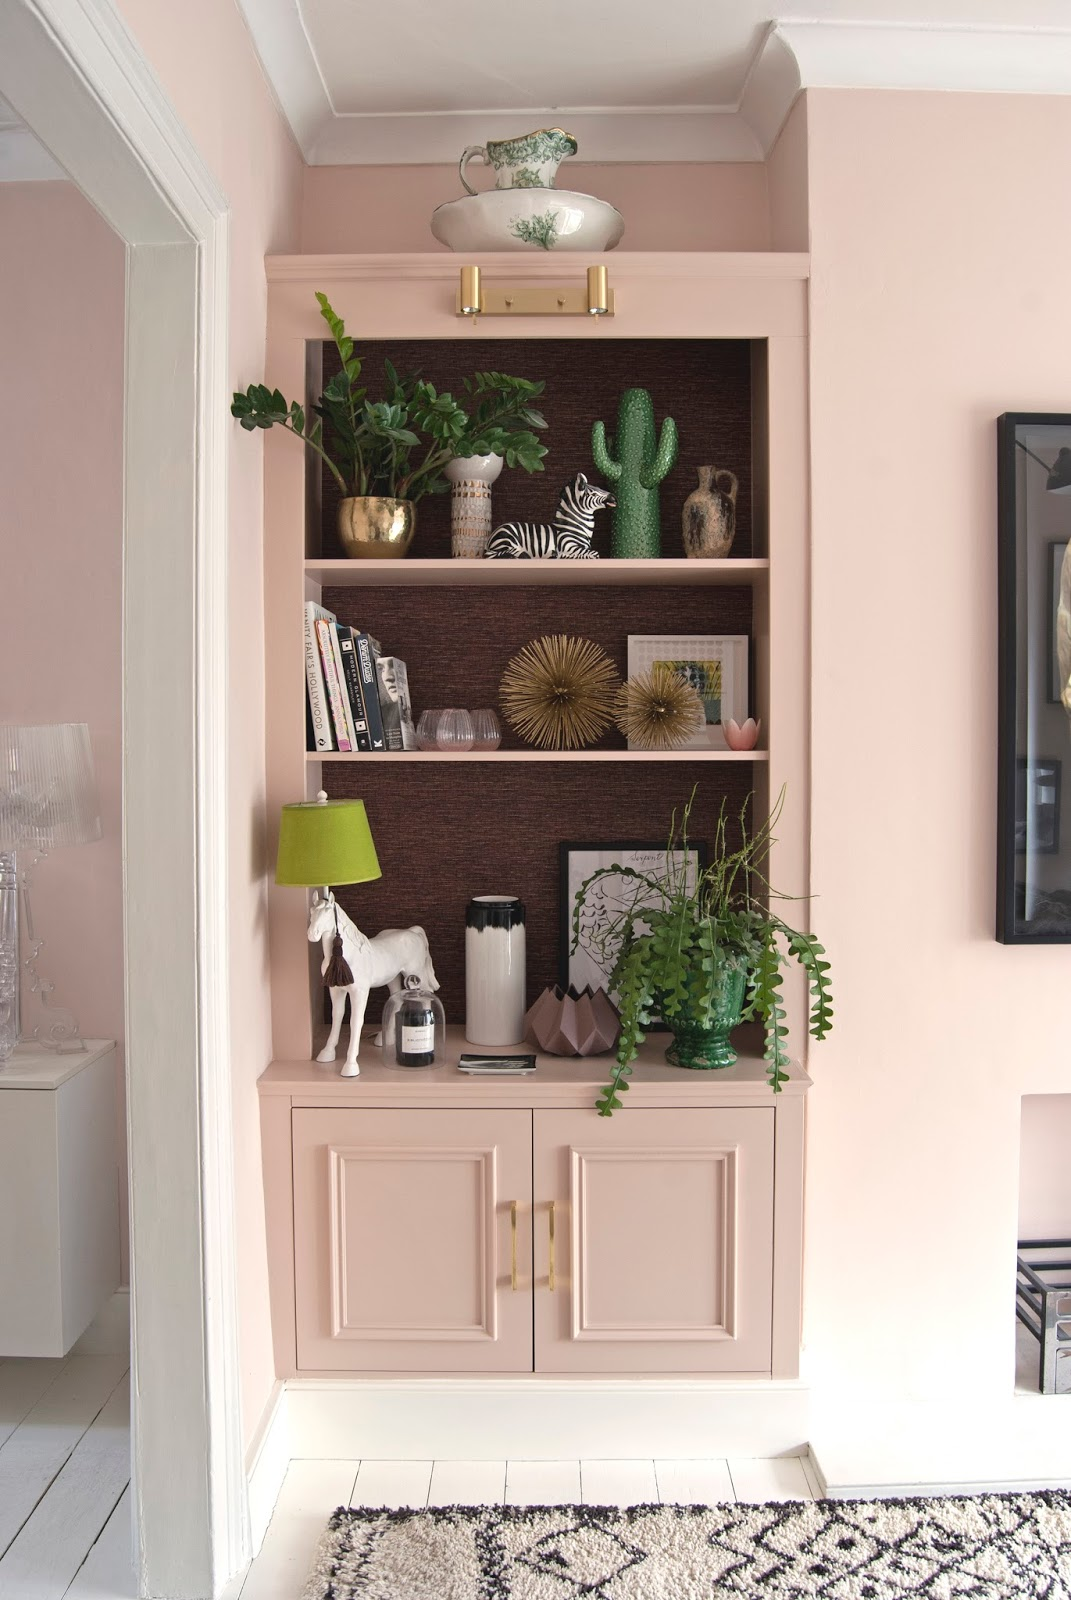 Amara Shoppable Home Inspiration Pages - French For Pineapple Blog - alcove shelving - setting plaster and pink ground walls, farrow and ball, horse lamp and plants